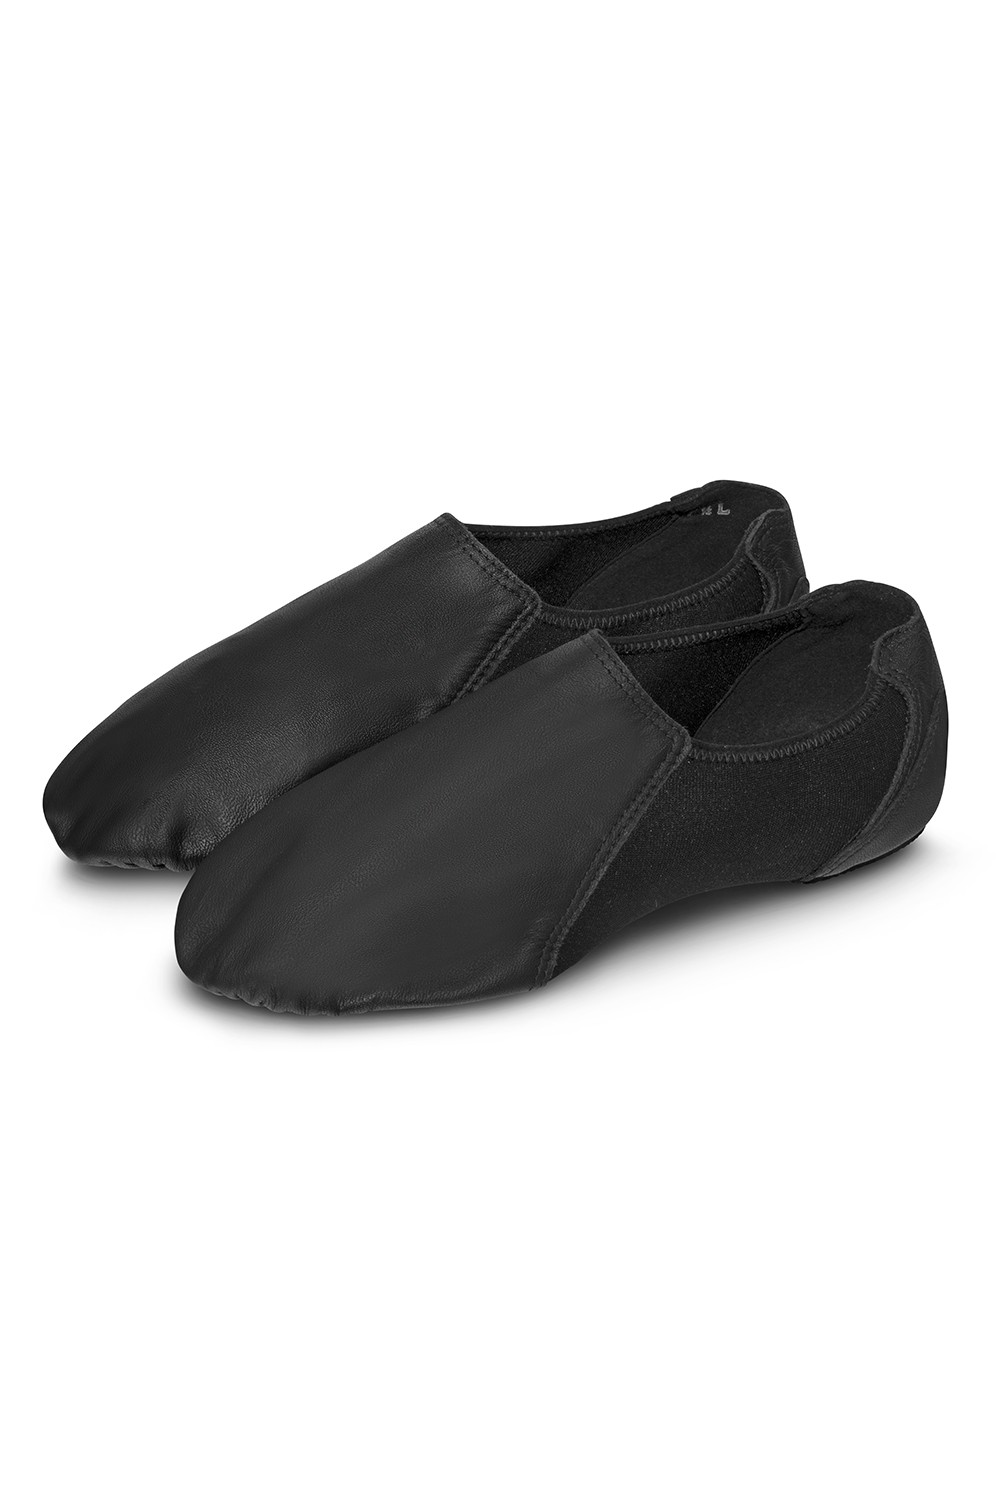 Spark - Girls Girl's Jazz Shoes